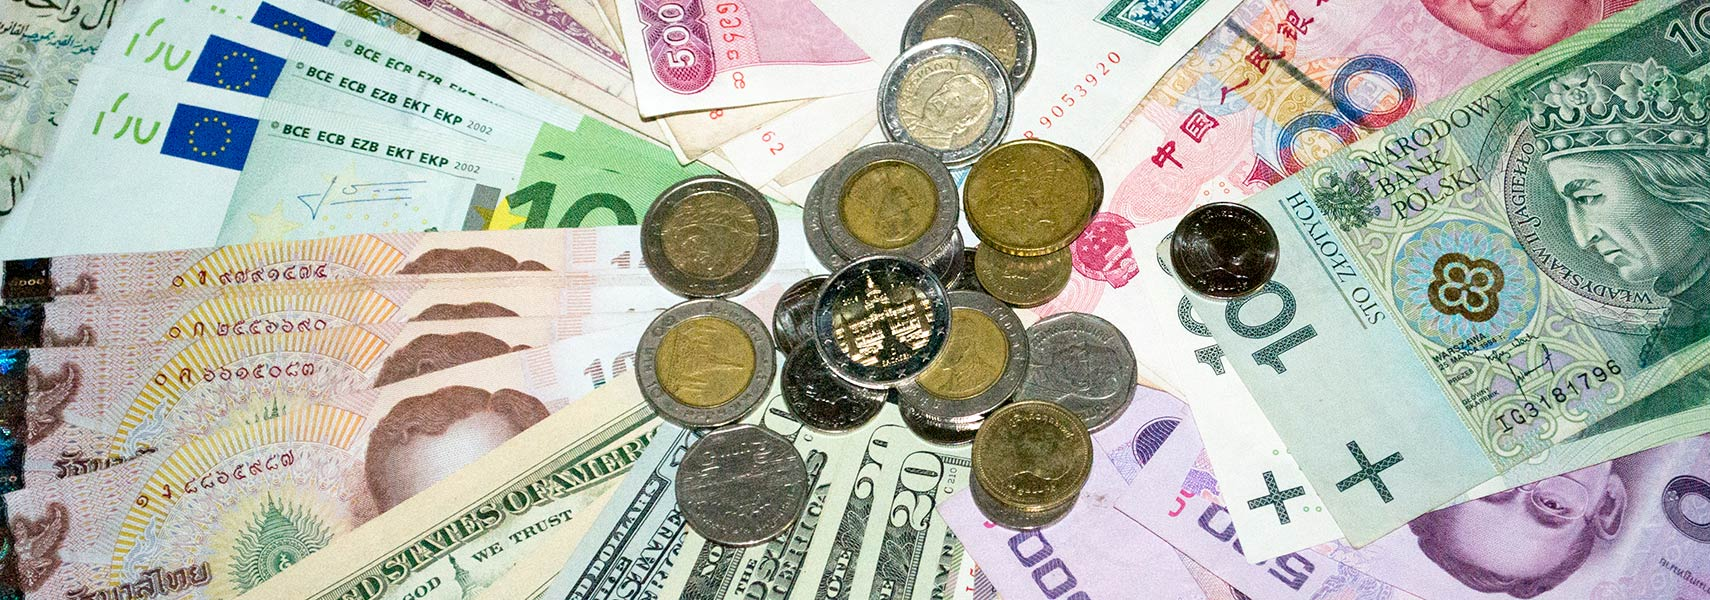 International Currencies, banknotes and coins